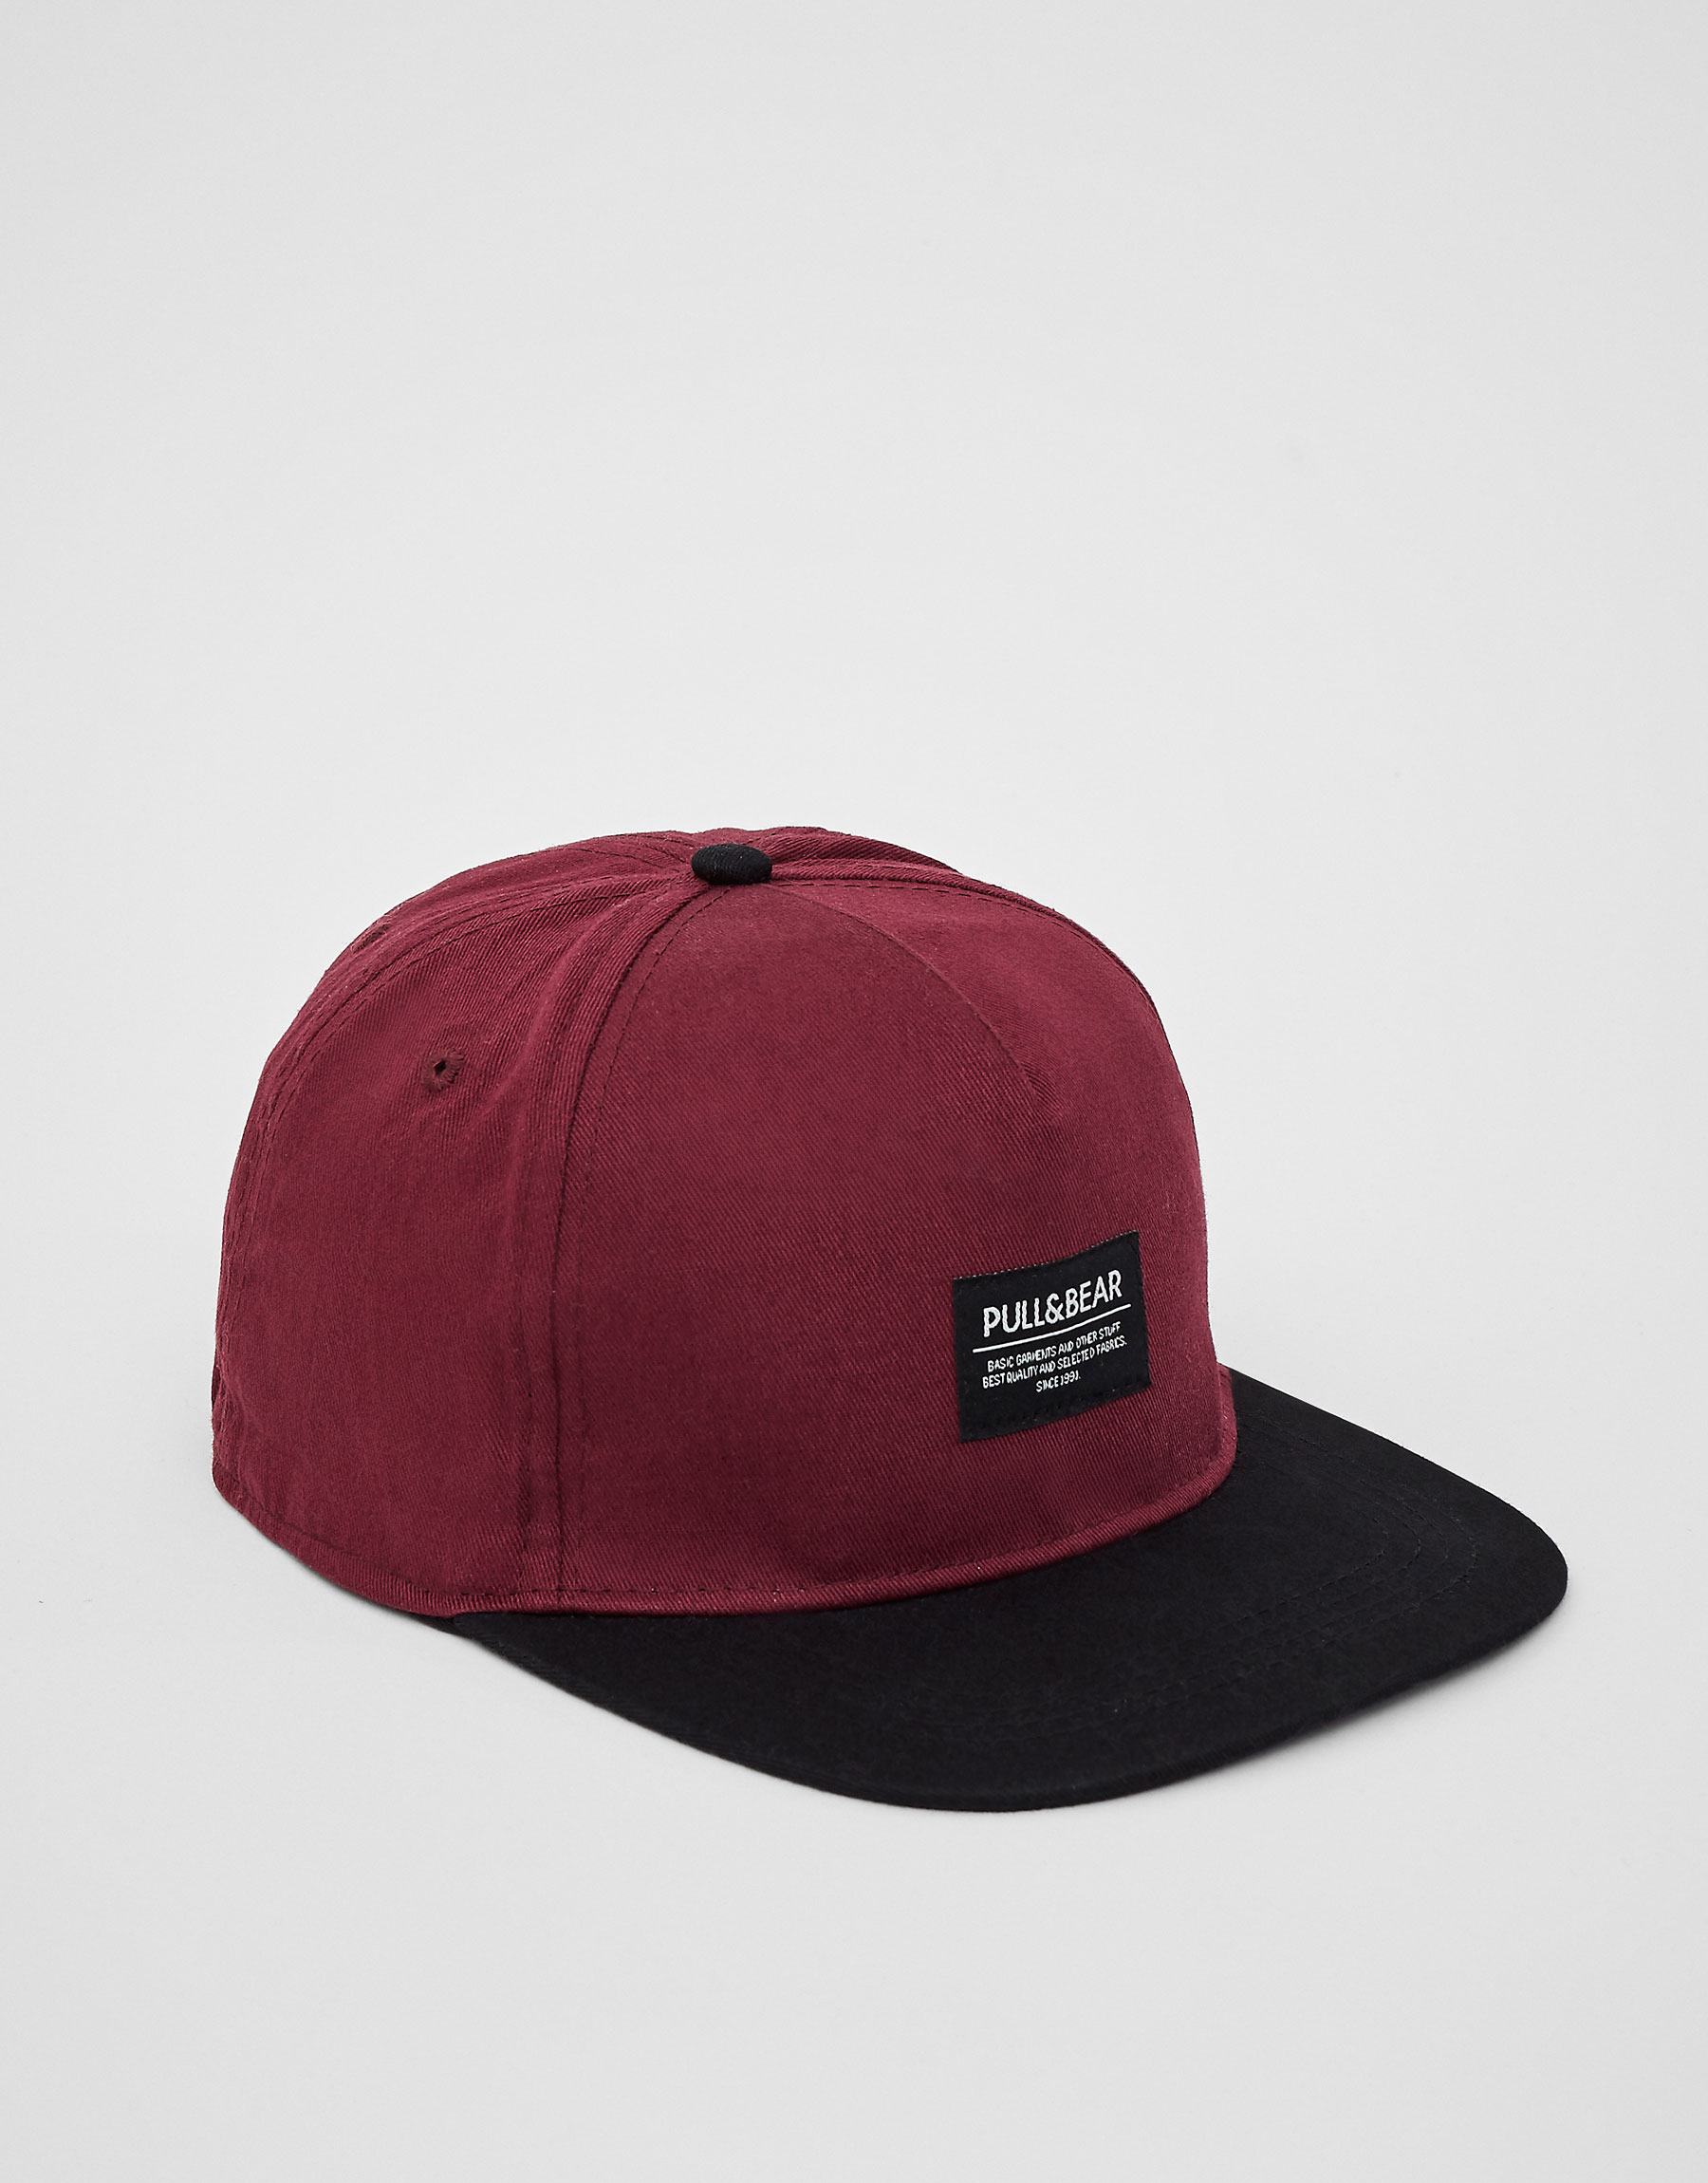 Burgundy cap with black visor